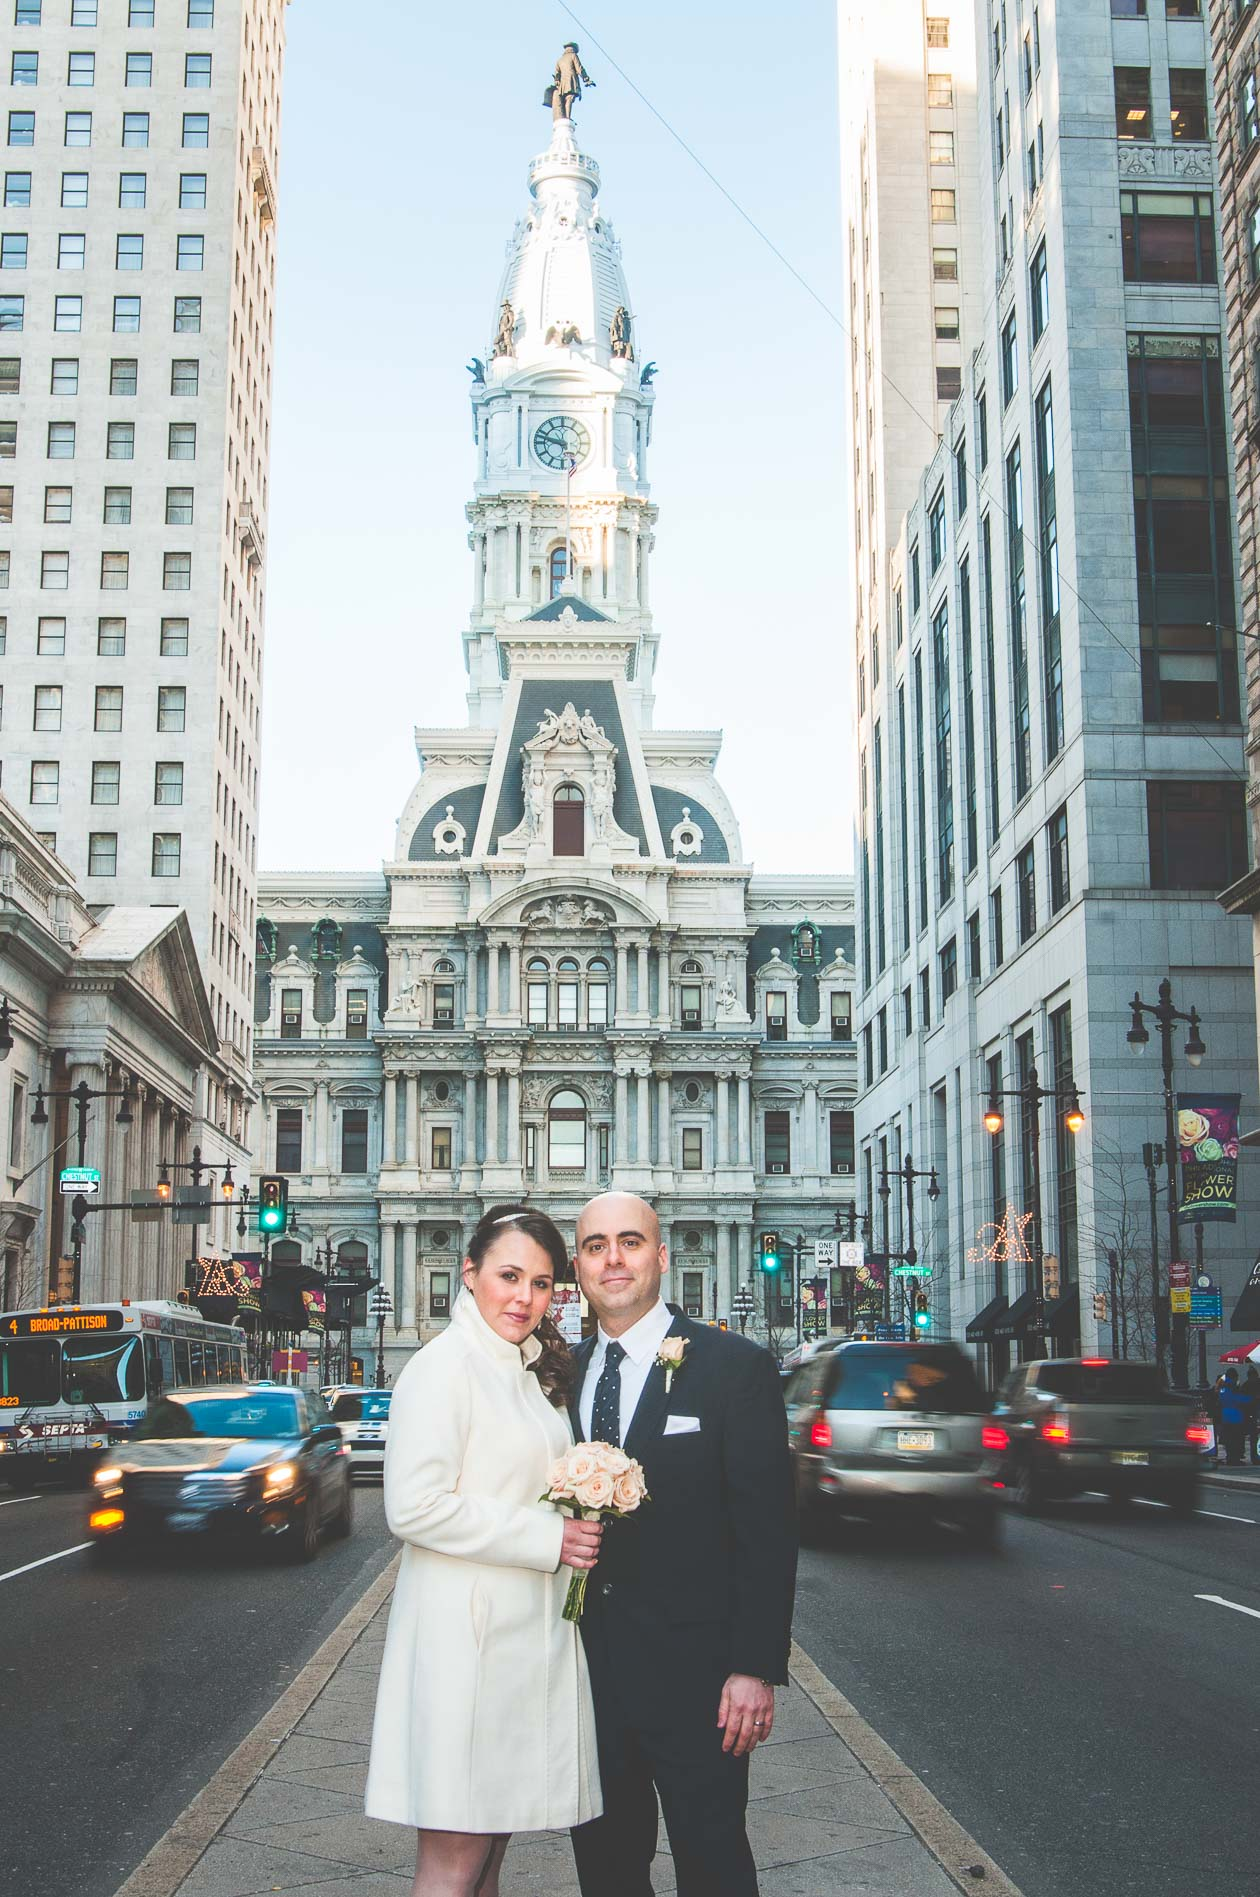 City Hall Weddings Philadelphia City Hall Wedding, Philadelphia PA.